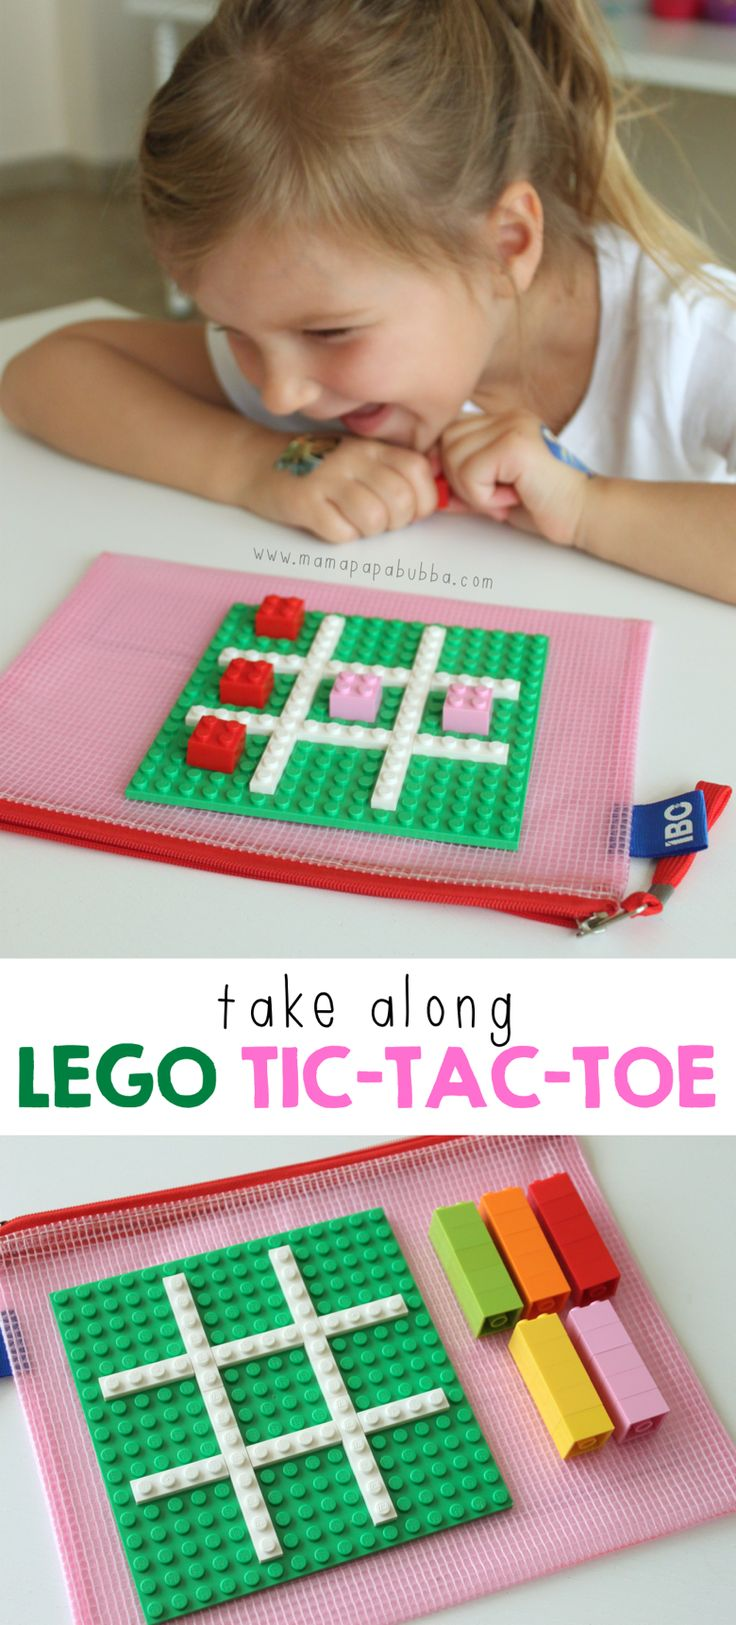 Take Along LEGO Tic-Tac-Toe Game for kids